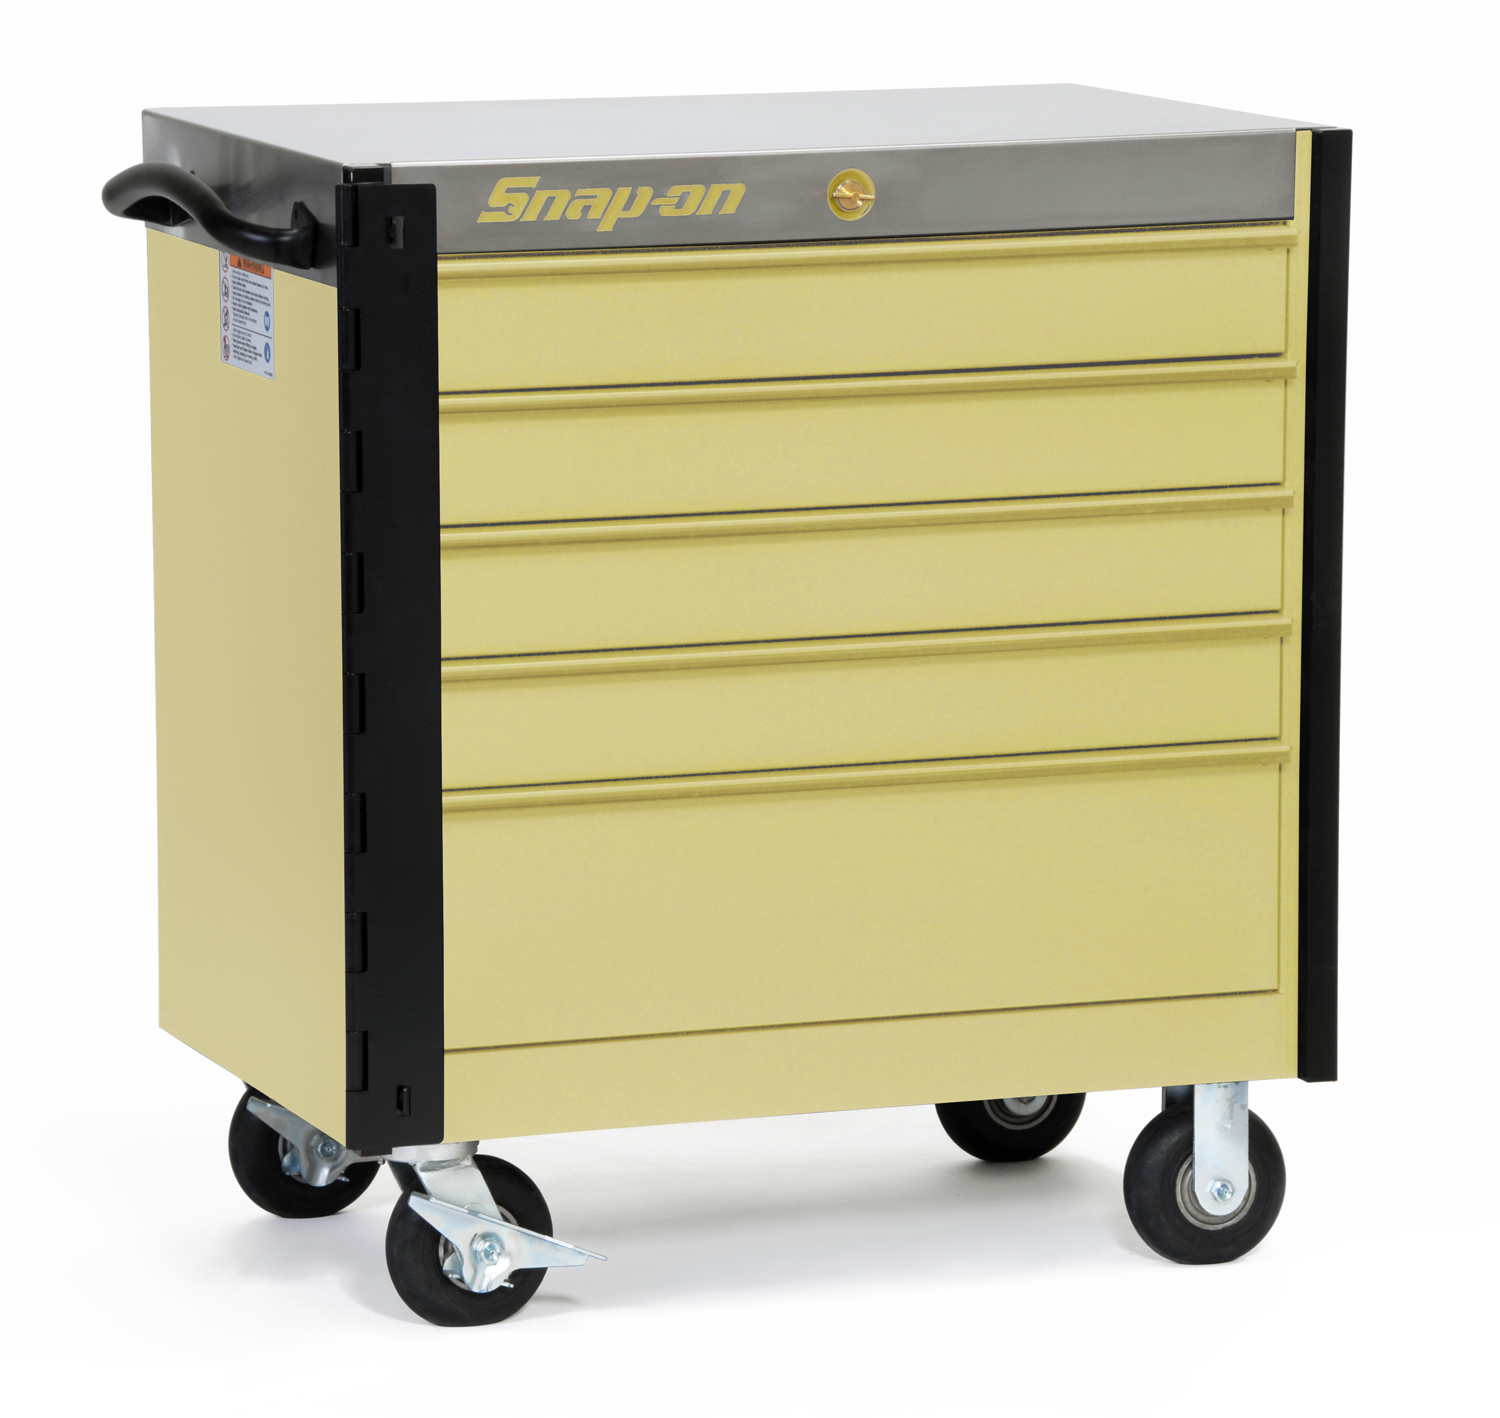 Snap-on Rolls Out Tough New Toolboxes | Business Aviation News ...